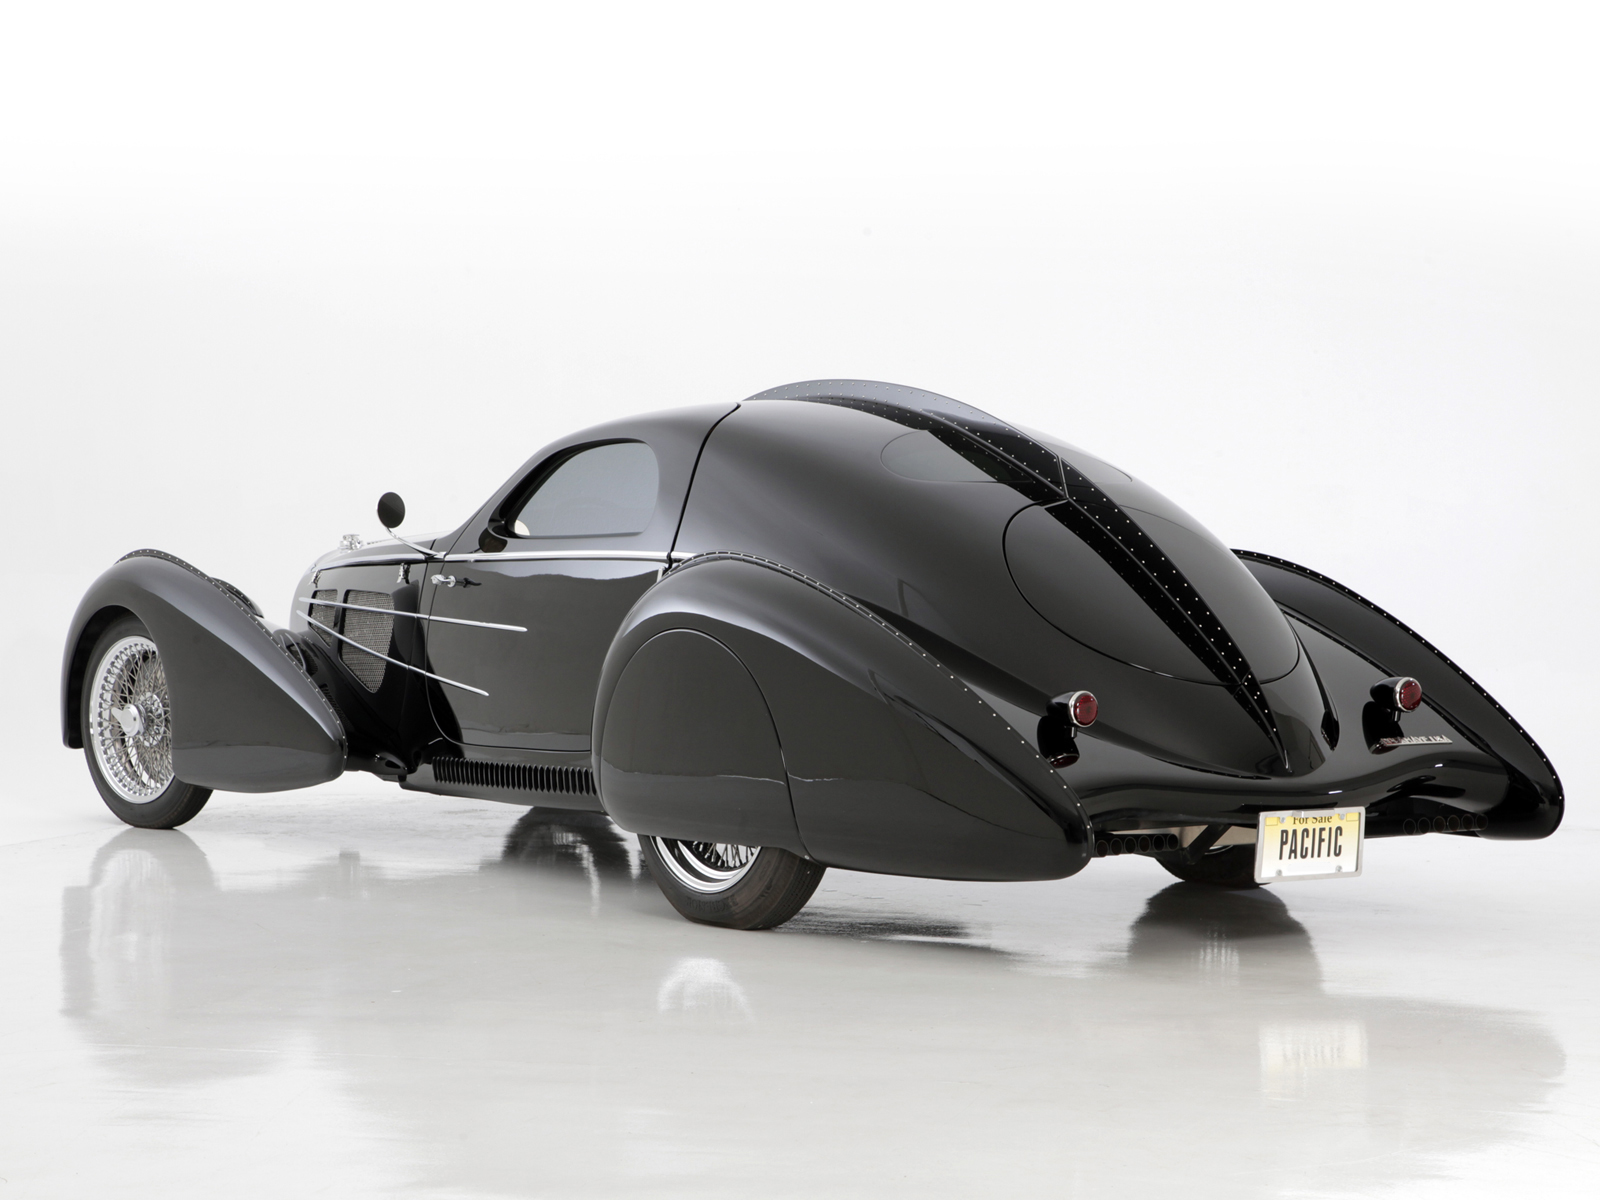 2014 Delahaye Usa Pacific Bugatti Atlantic Tribute